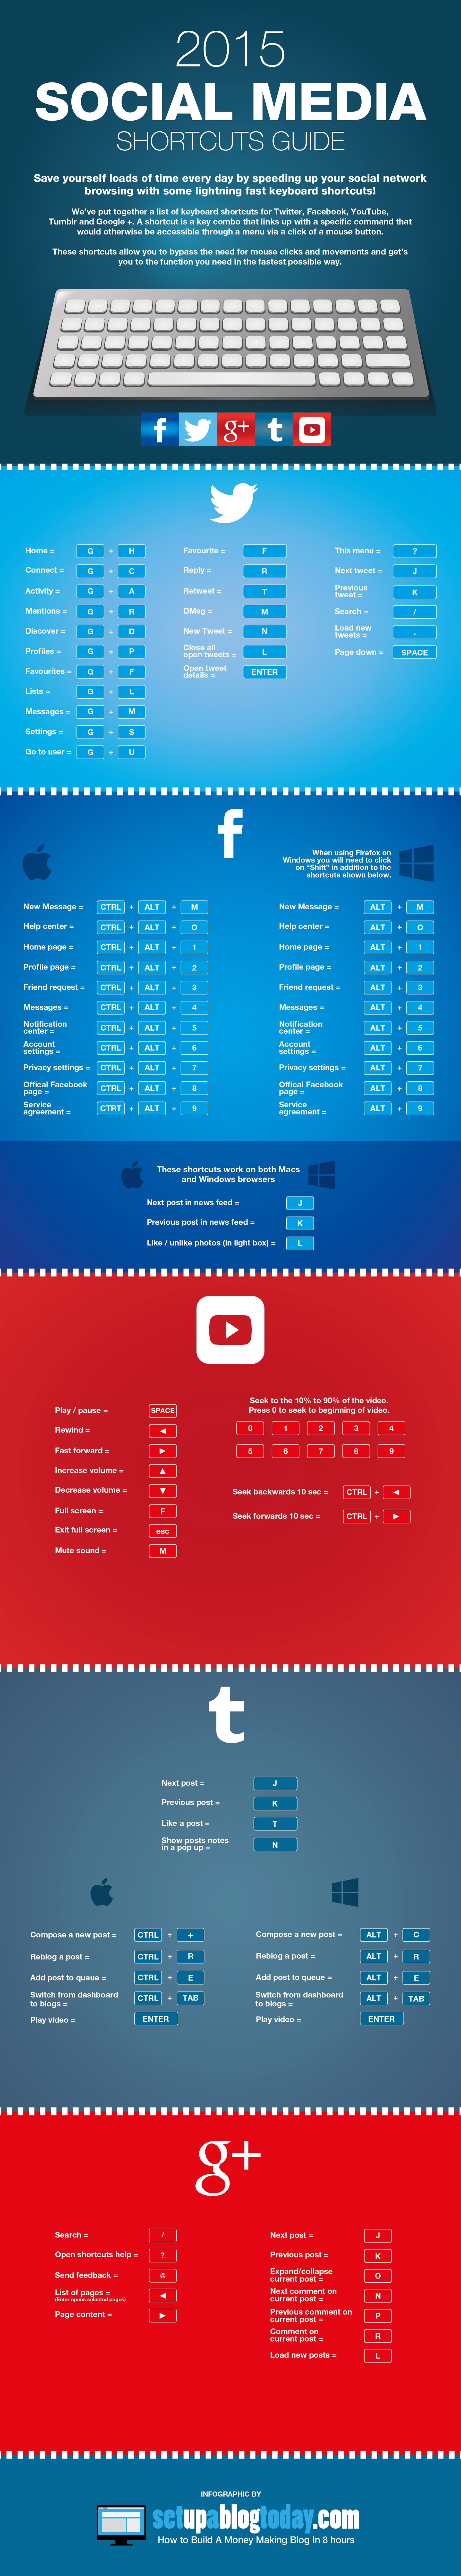 2015 Social Media Keyboard Shortcuts Cheat Sheet #infographic